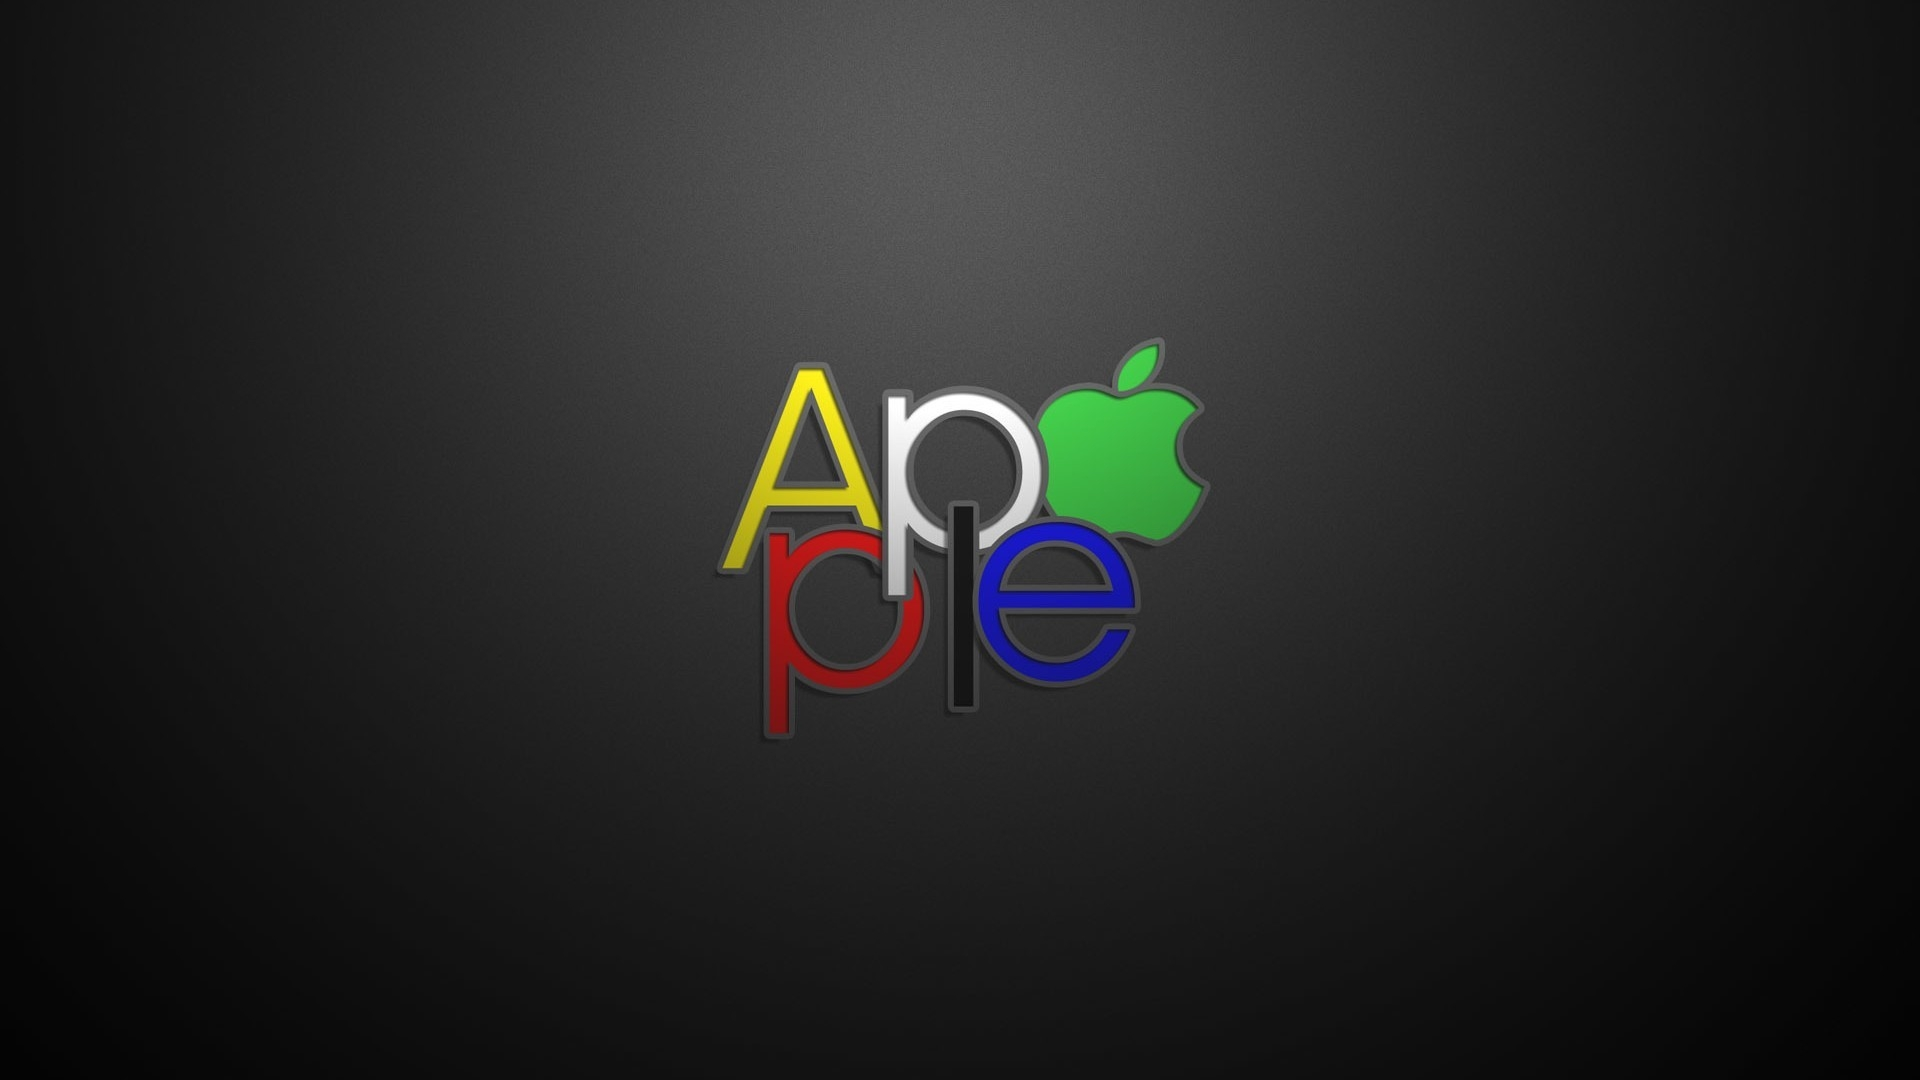 Apple Text Logo for 1920 x 1080 HDTV 1080p resolution